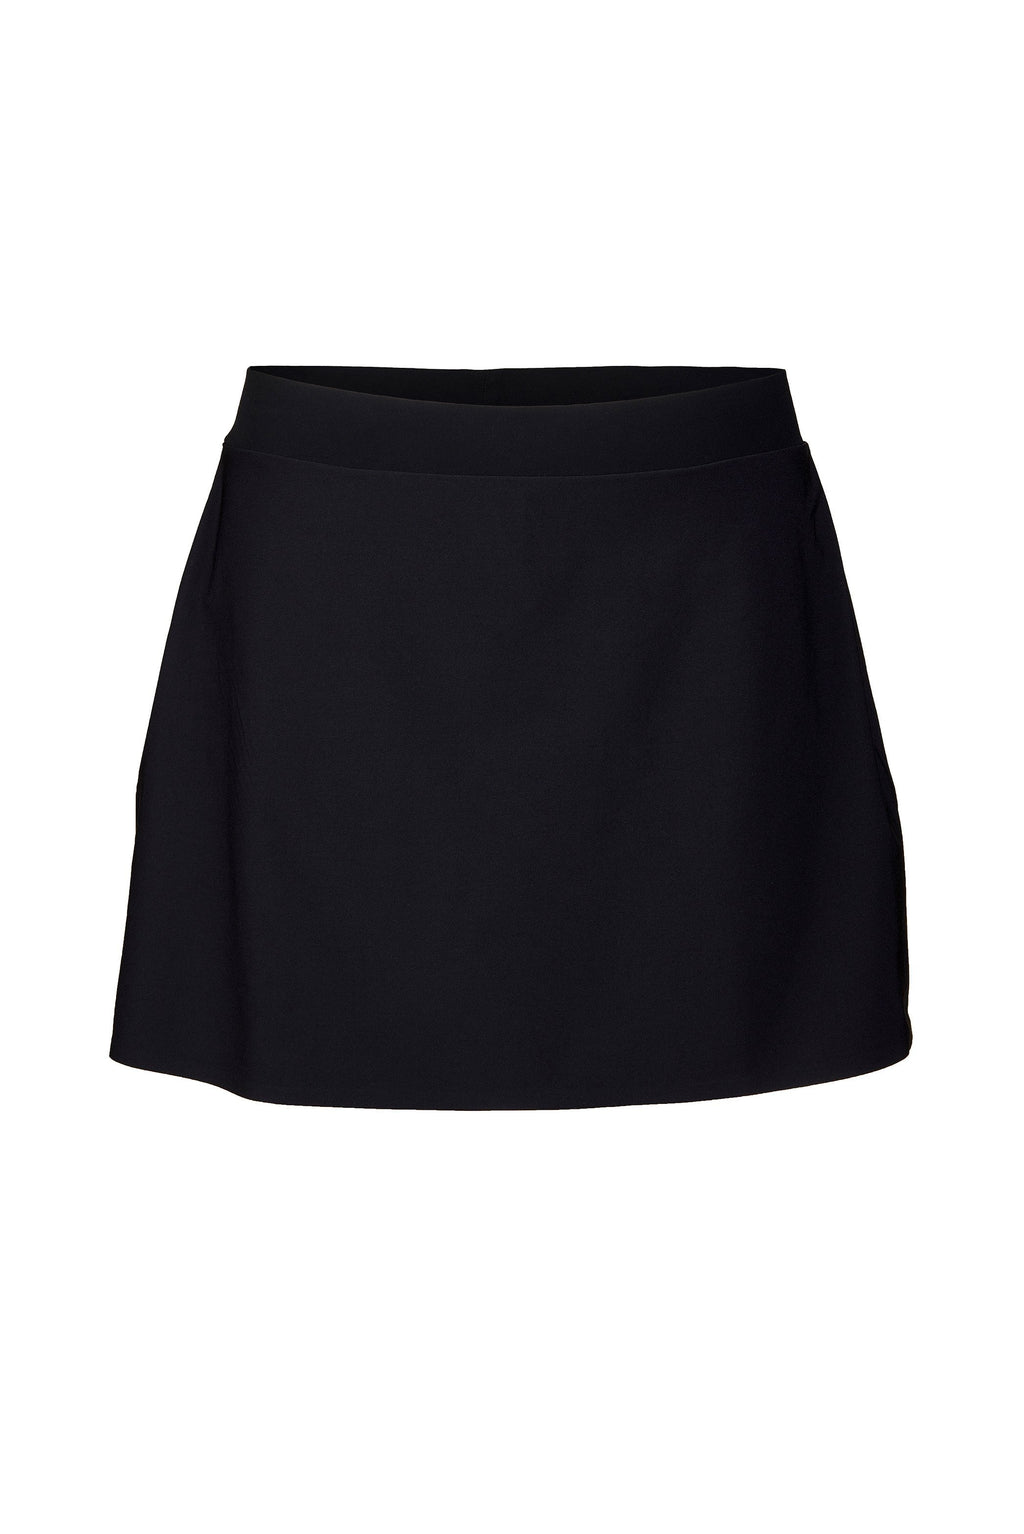 Bounce Skort - Mission Statement Apparel